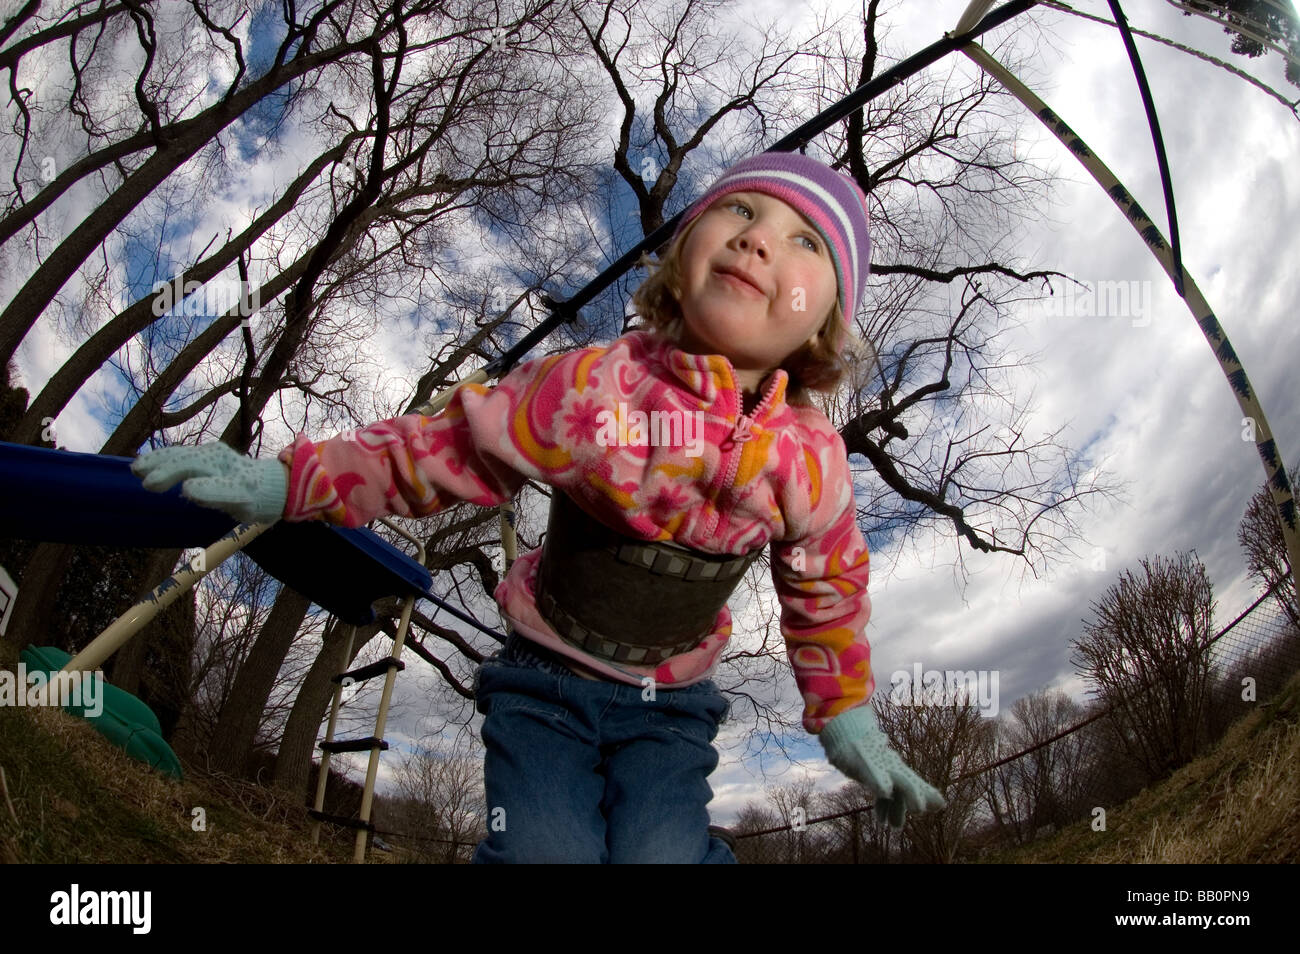 A young child pretend to fly on her swing during a cool day in her backyard - Stock Image